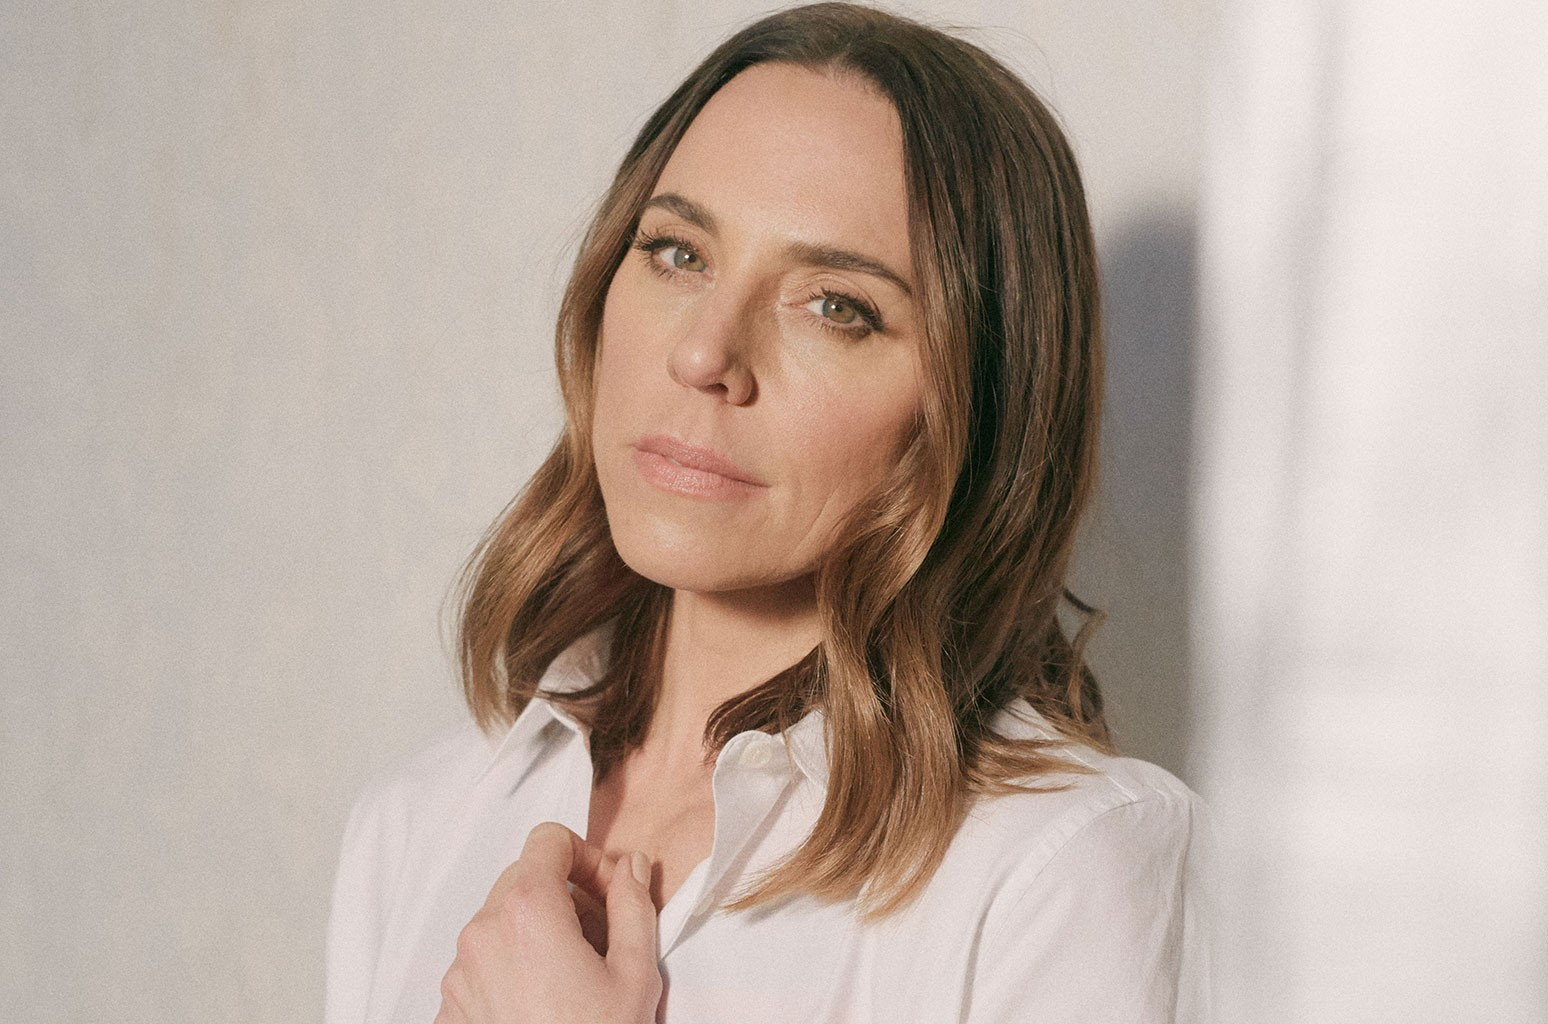 Melanie C on Giving Fans What They Wanted With 'Into You' & Spice Girls Anniversary Plans